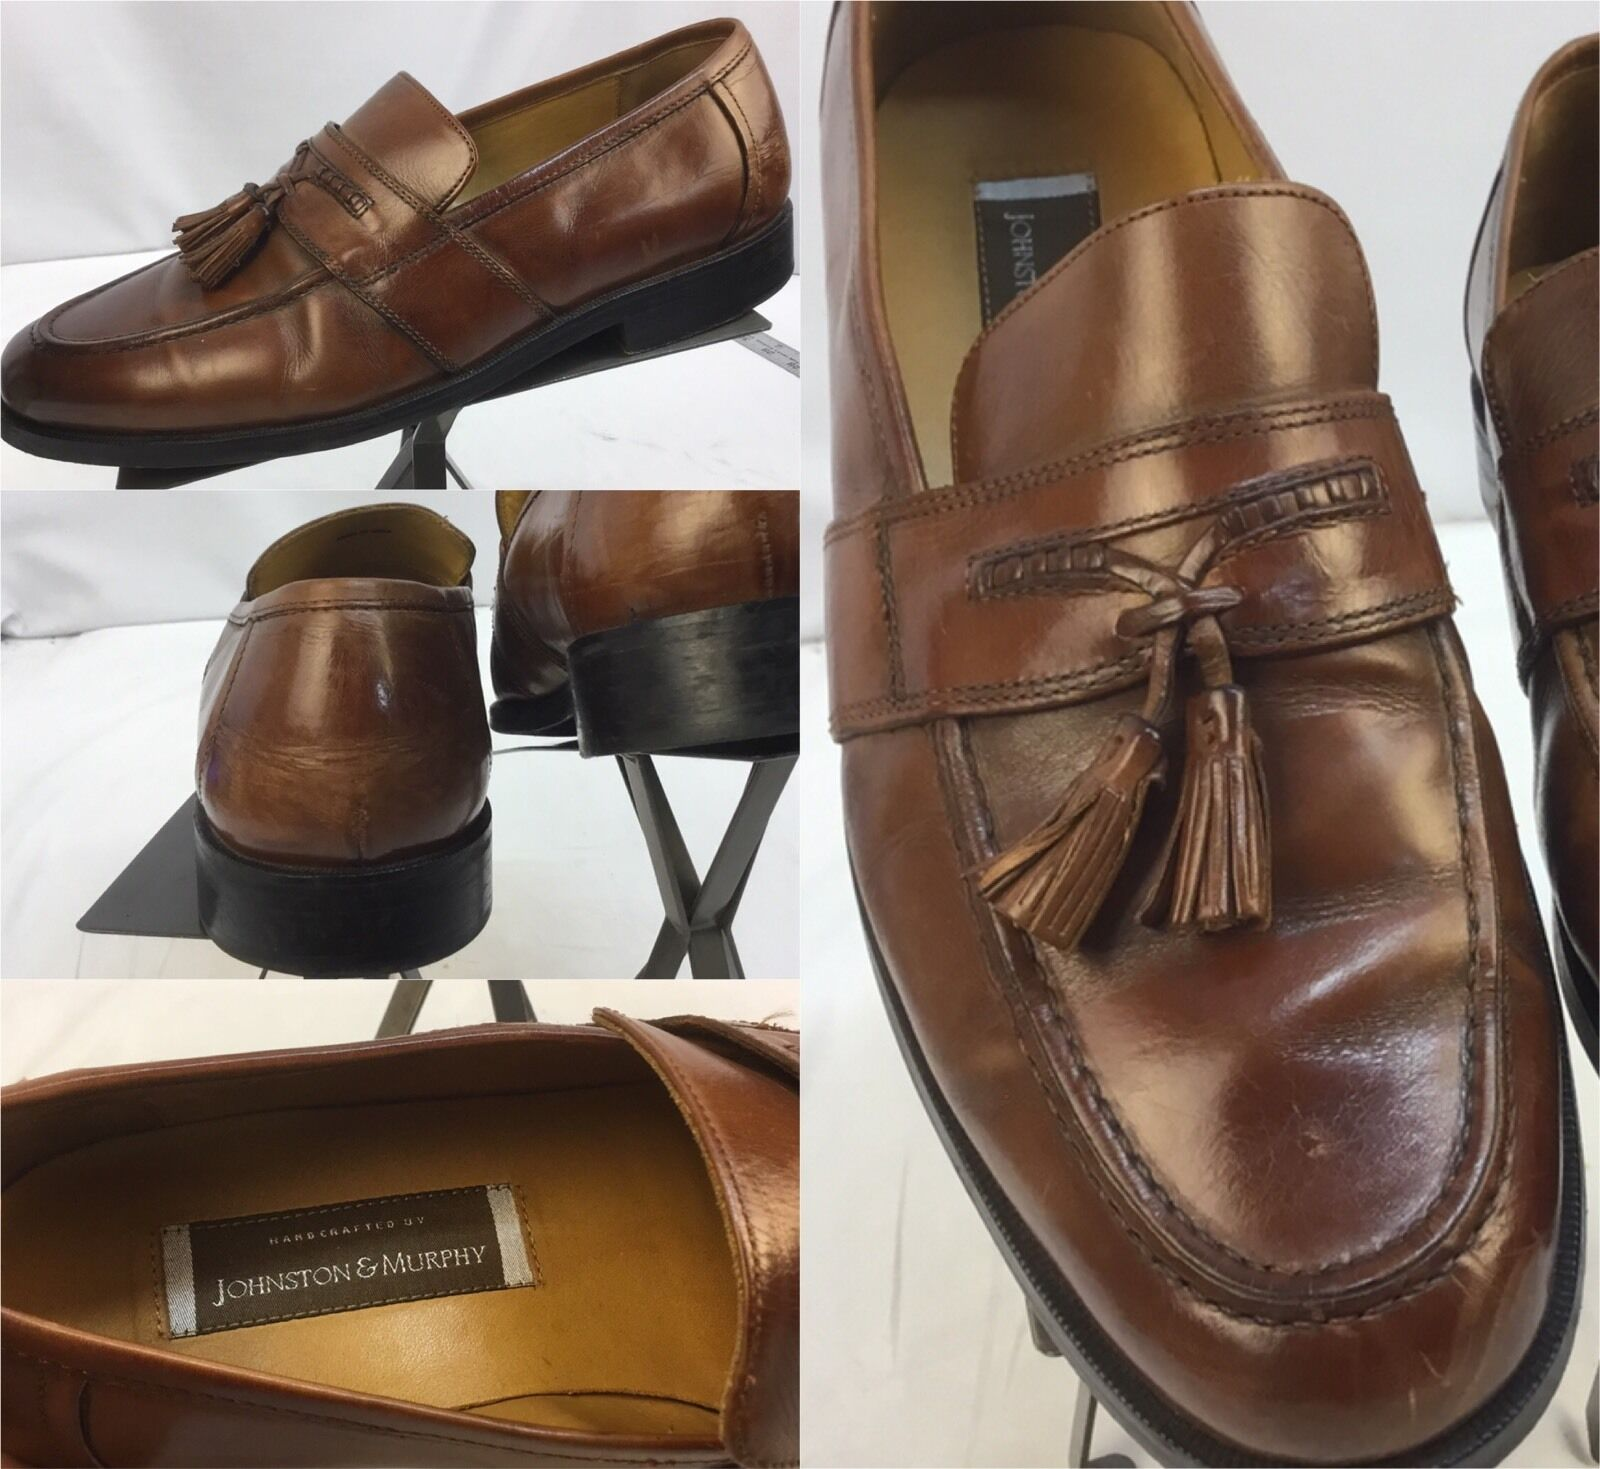 Johnston Murphy M Dress Shoes Sz 10.5 M Murphy Brown Loafers Tassels India EUC YGI M a6995e